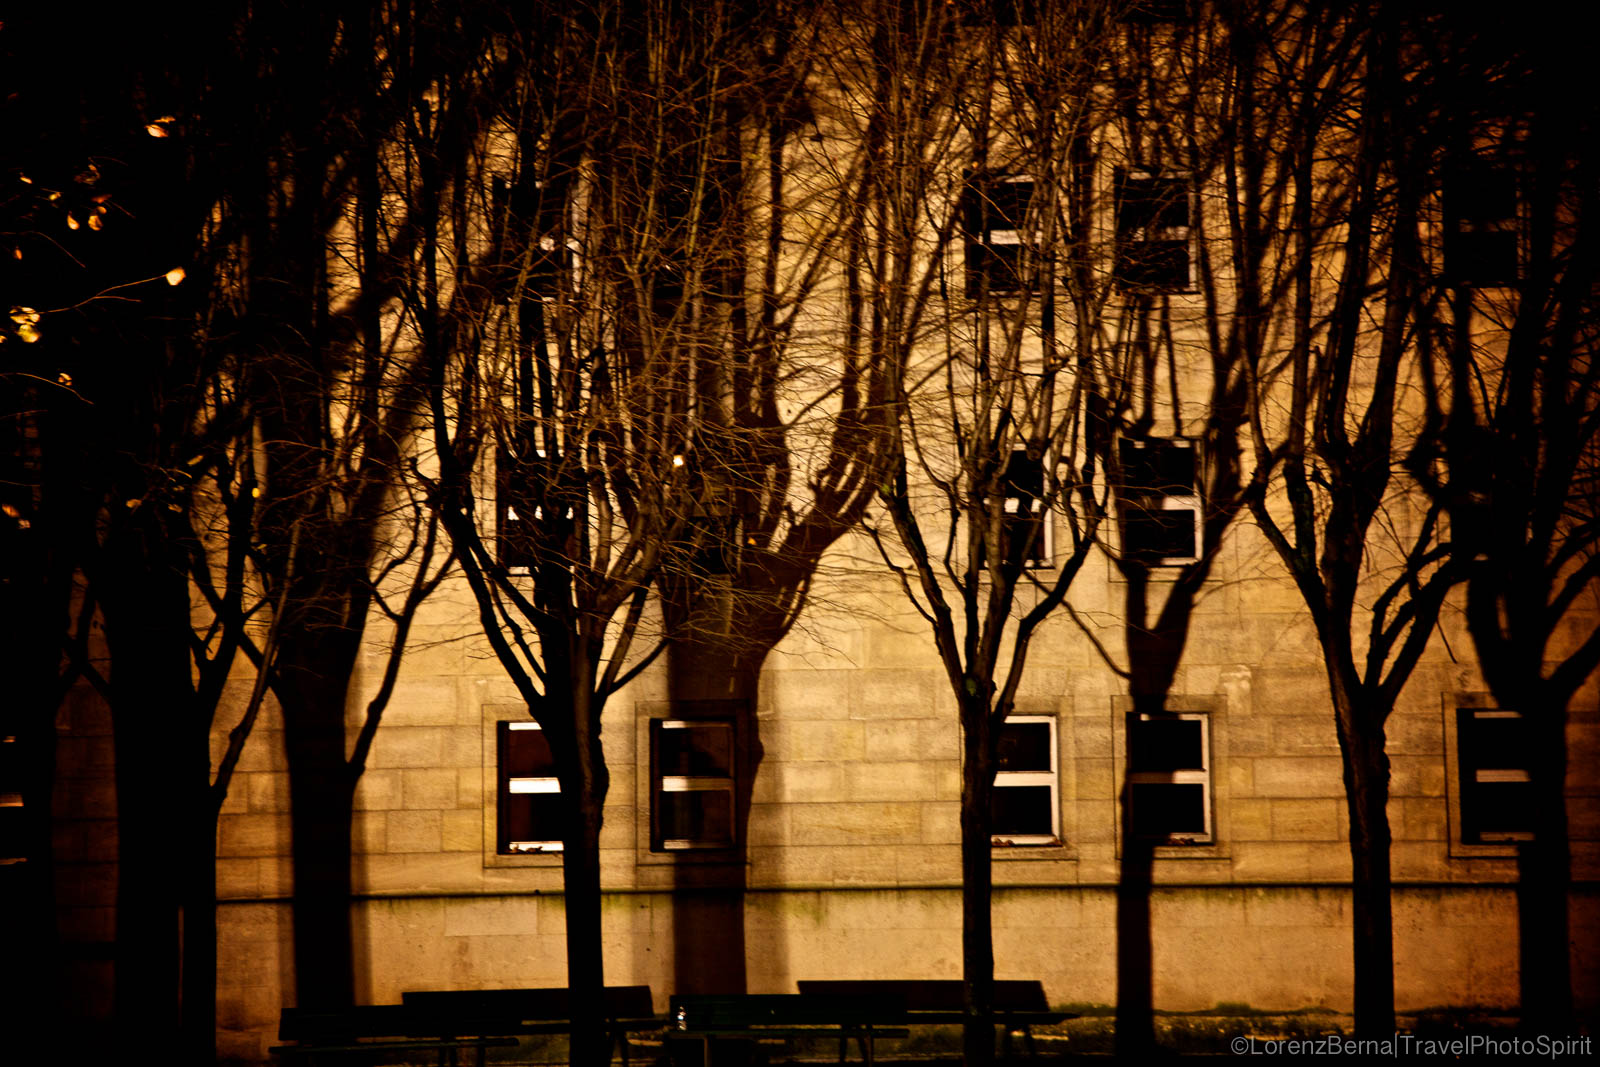 Trees along a wall in Paris, France